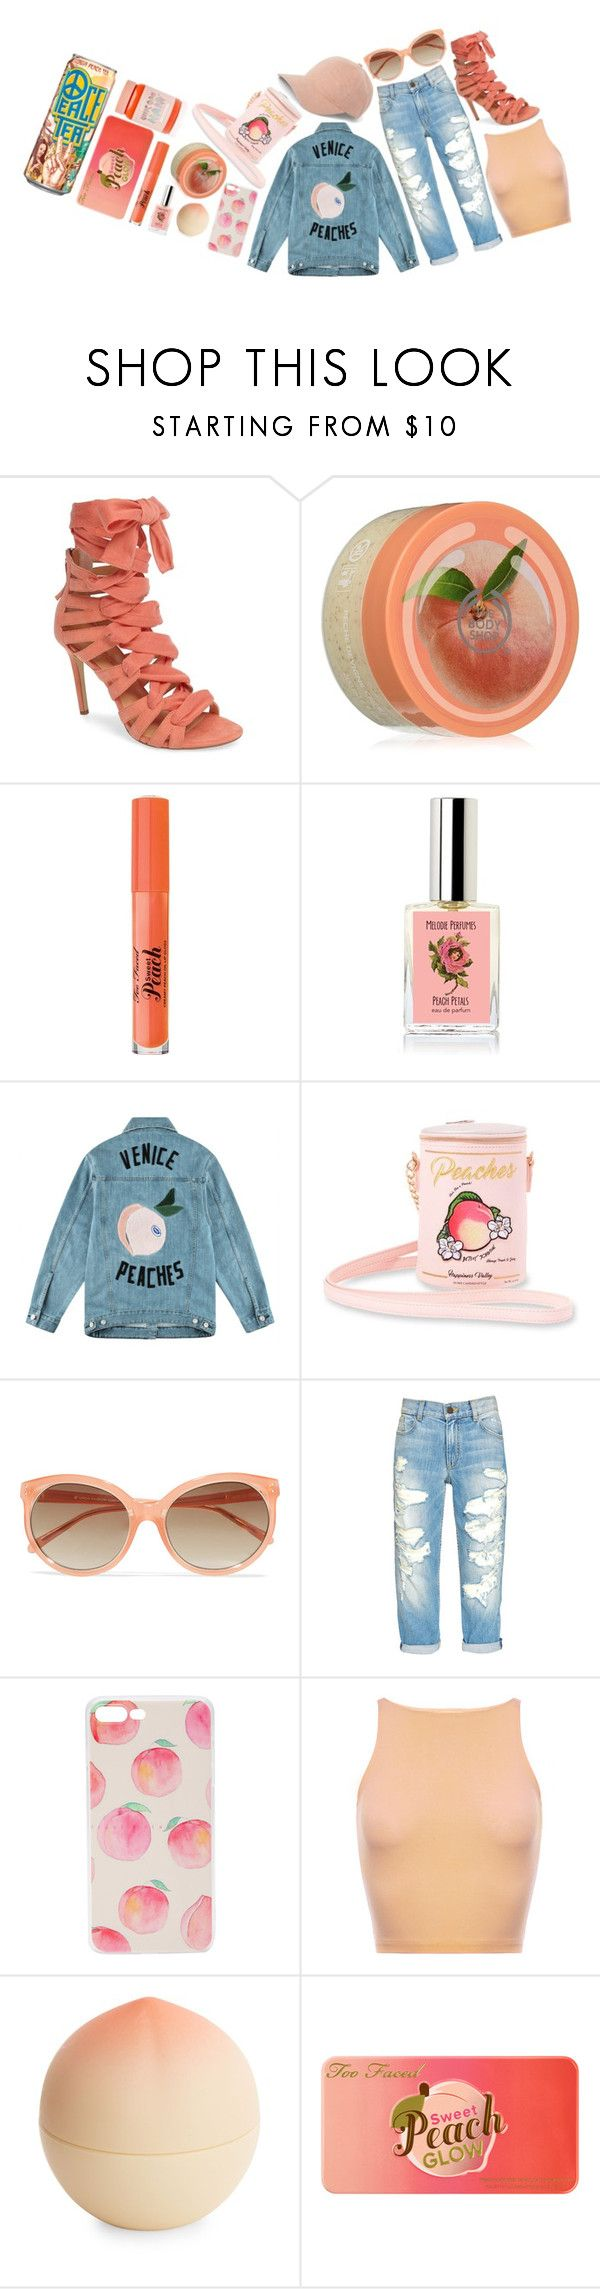 """""""🍑Just Peachy🍑"""" by pixleyhunter ❤ liked on Polyvore featuring Daya, The Body Shop, Too Faced Cosmetics, Être Cécile, Betsey Johnson, Linda Farrow, Tony Moly and Lime Crime"""